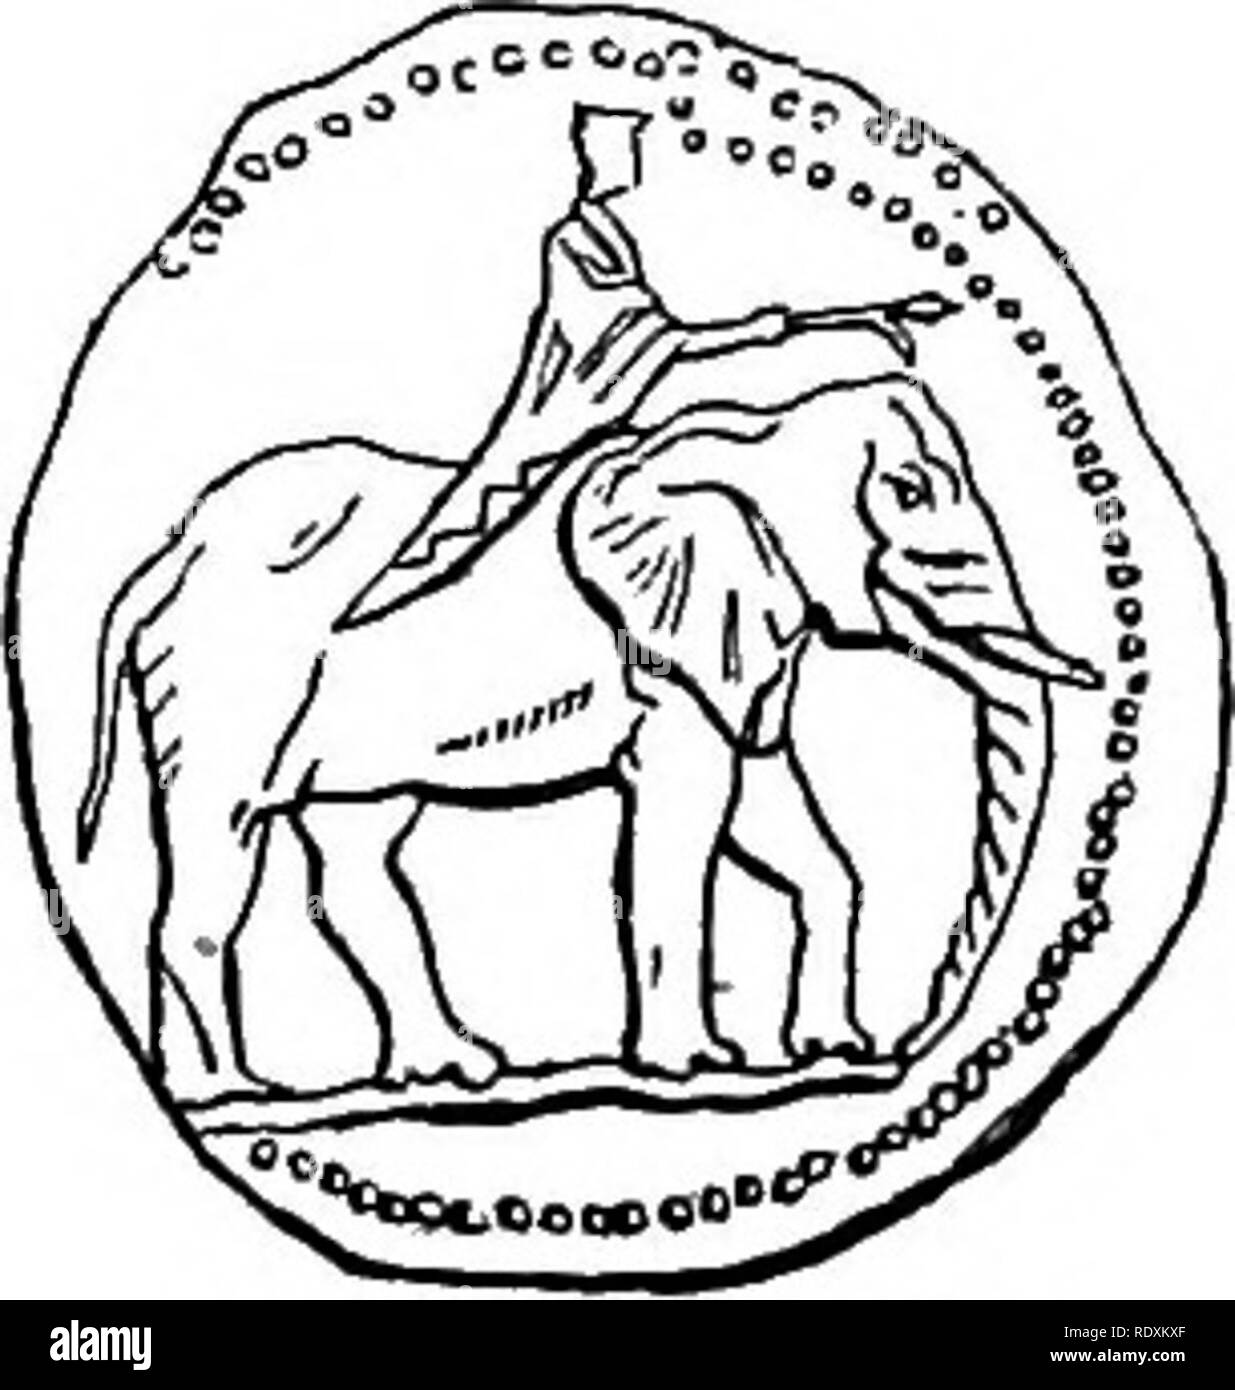 8d337d1d89bc6 ... anecdotes illustrative of the habits and instincts of the mammalia,  birds, reptiles, fishes, insects, &c. including a monograph of the  elephant .